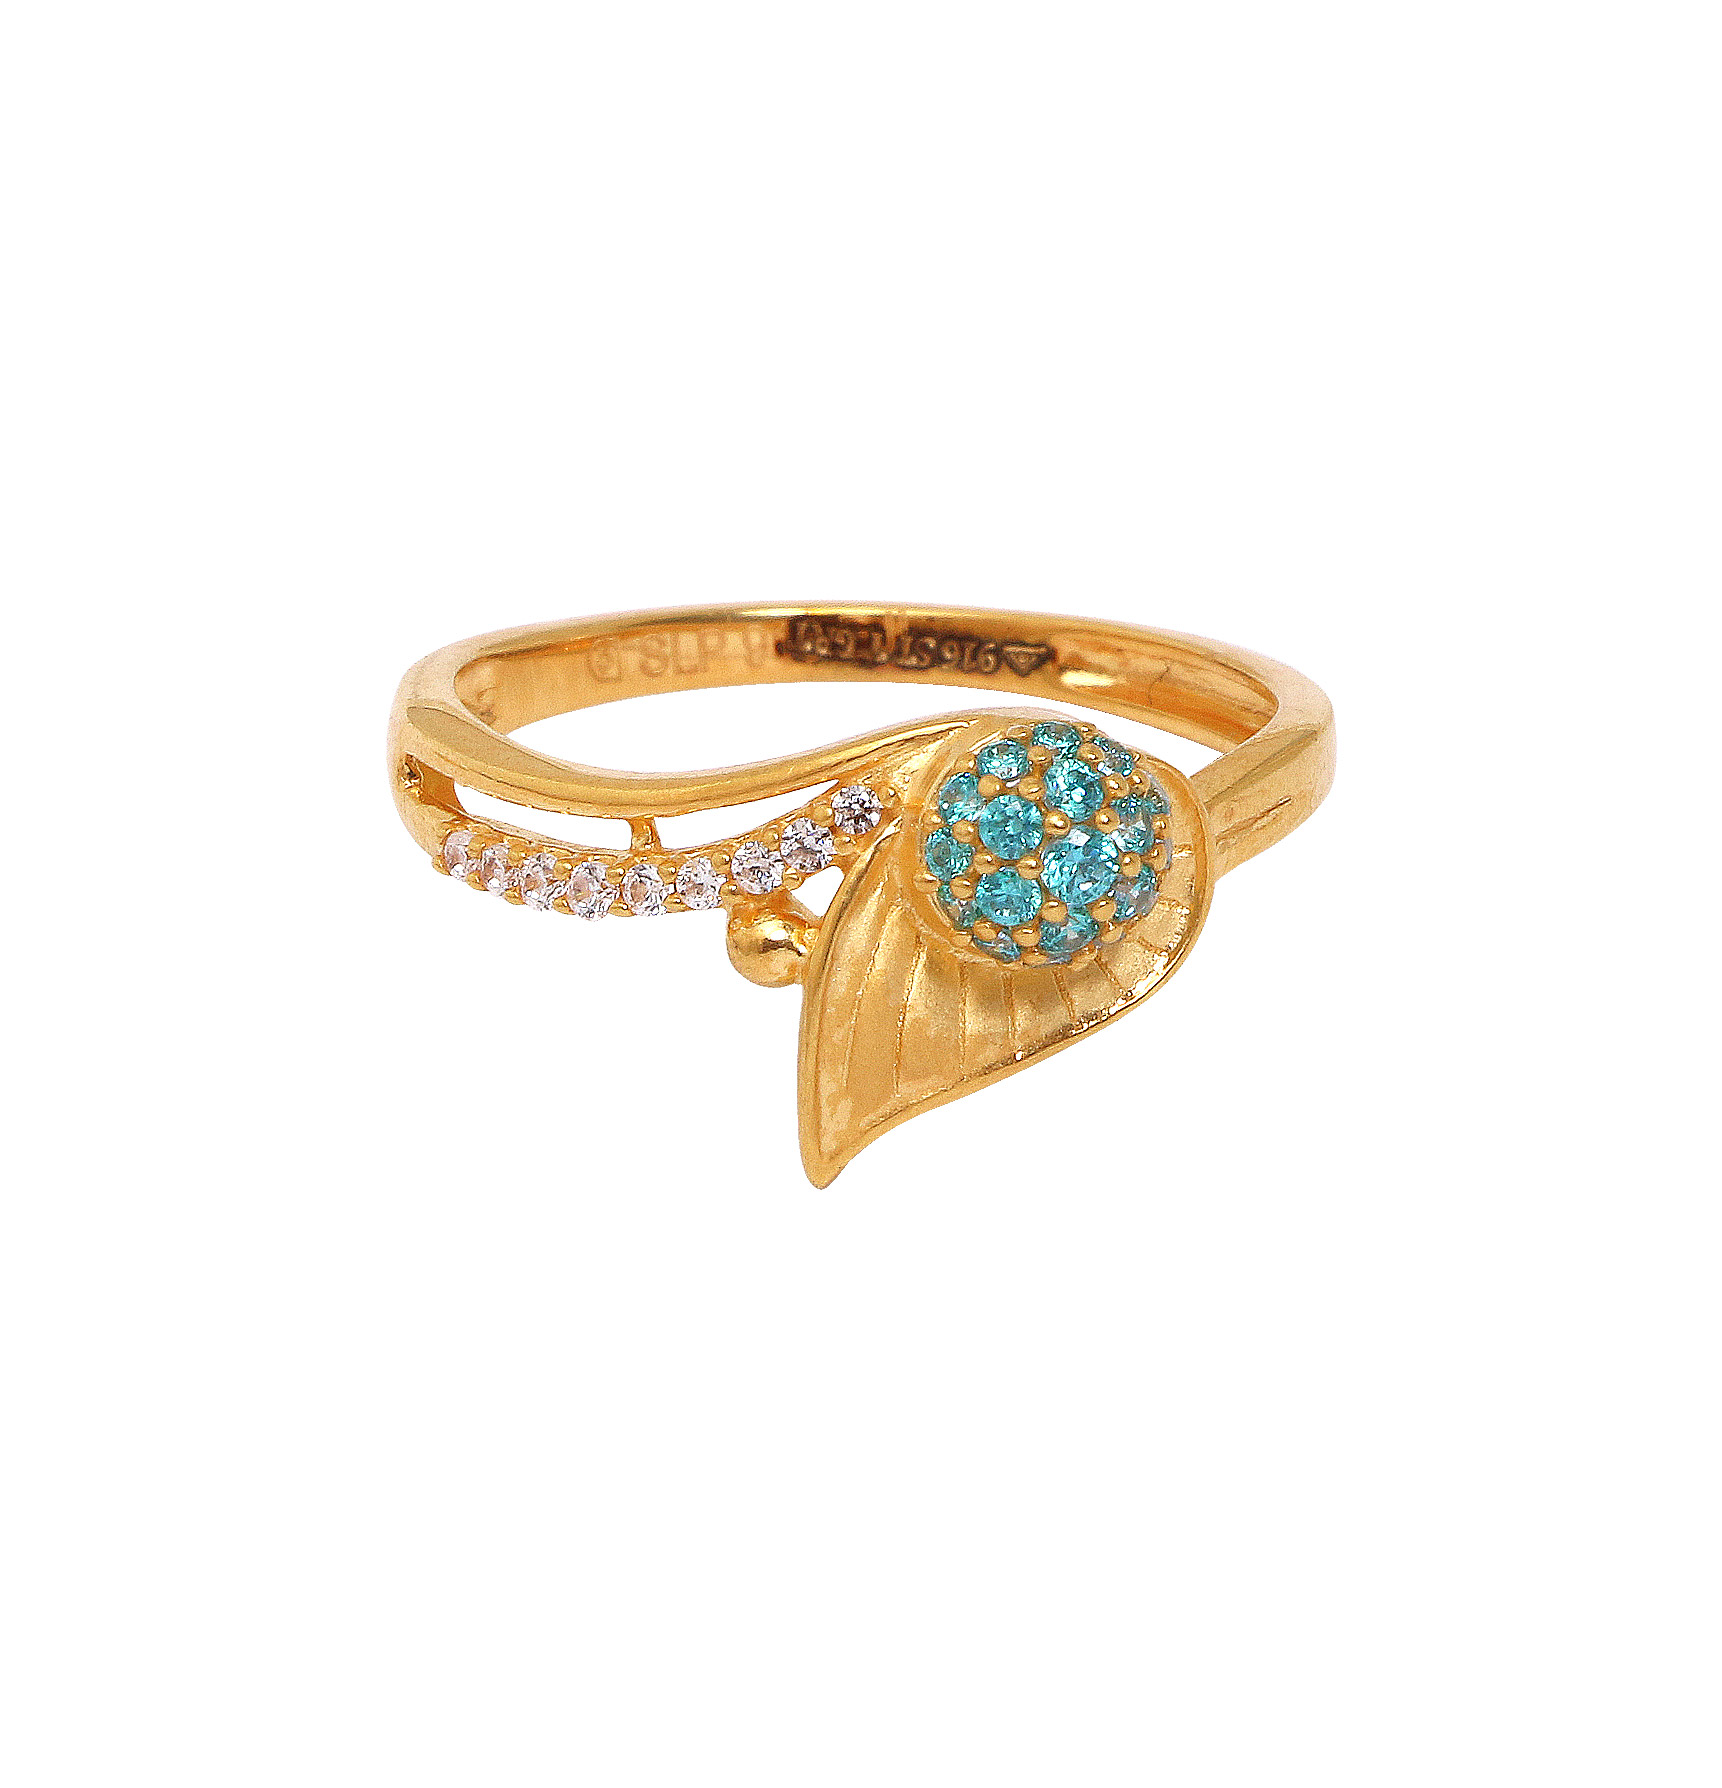 Rings | GRT Jewellers – At Singapore from 3rd July